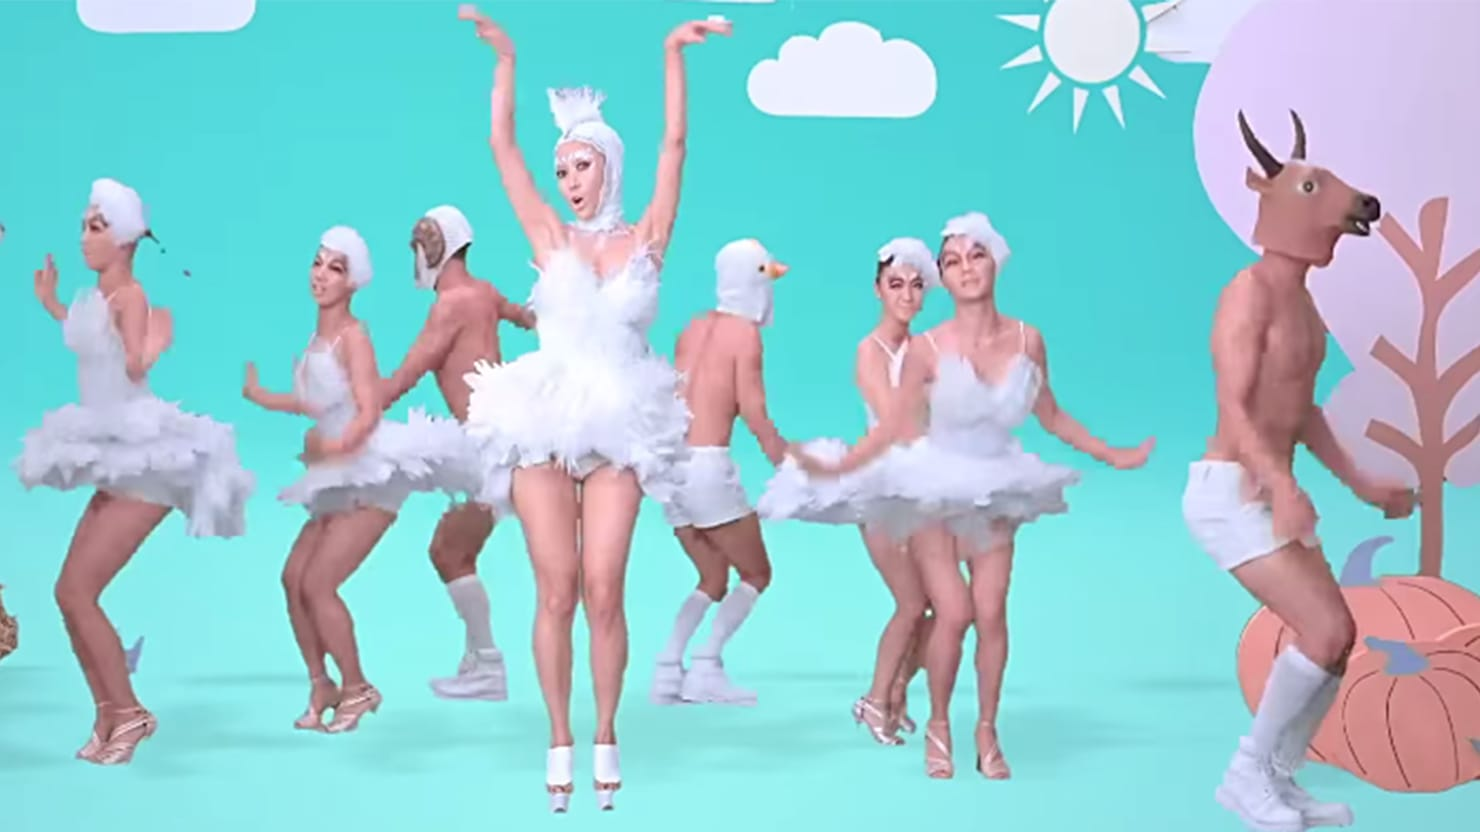 The Most WTF Music Video of the Year: Wang Rong's 'Chick Chick' is 'Gangnam Style' on MDMA